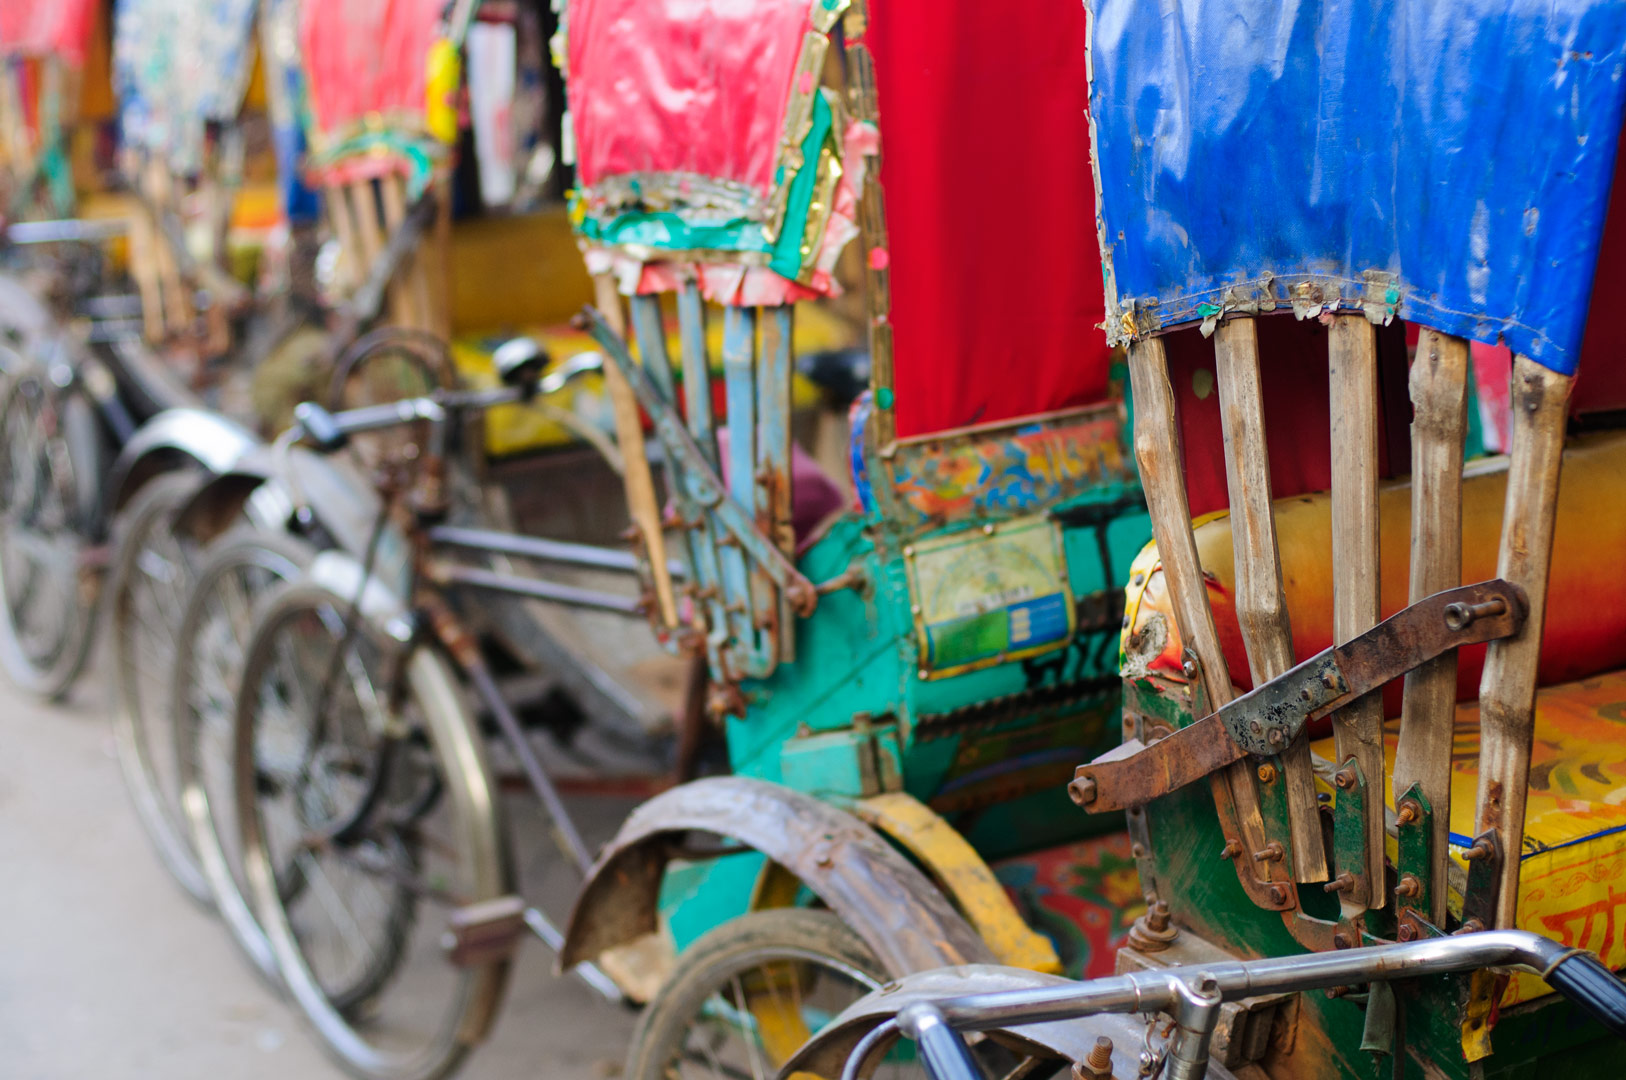 Colorful parked rickshaws in Bangladesh.